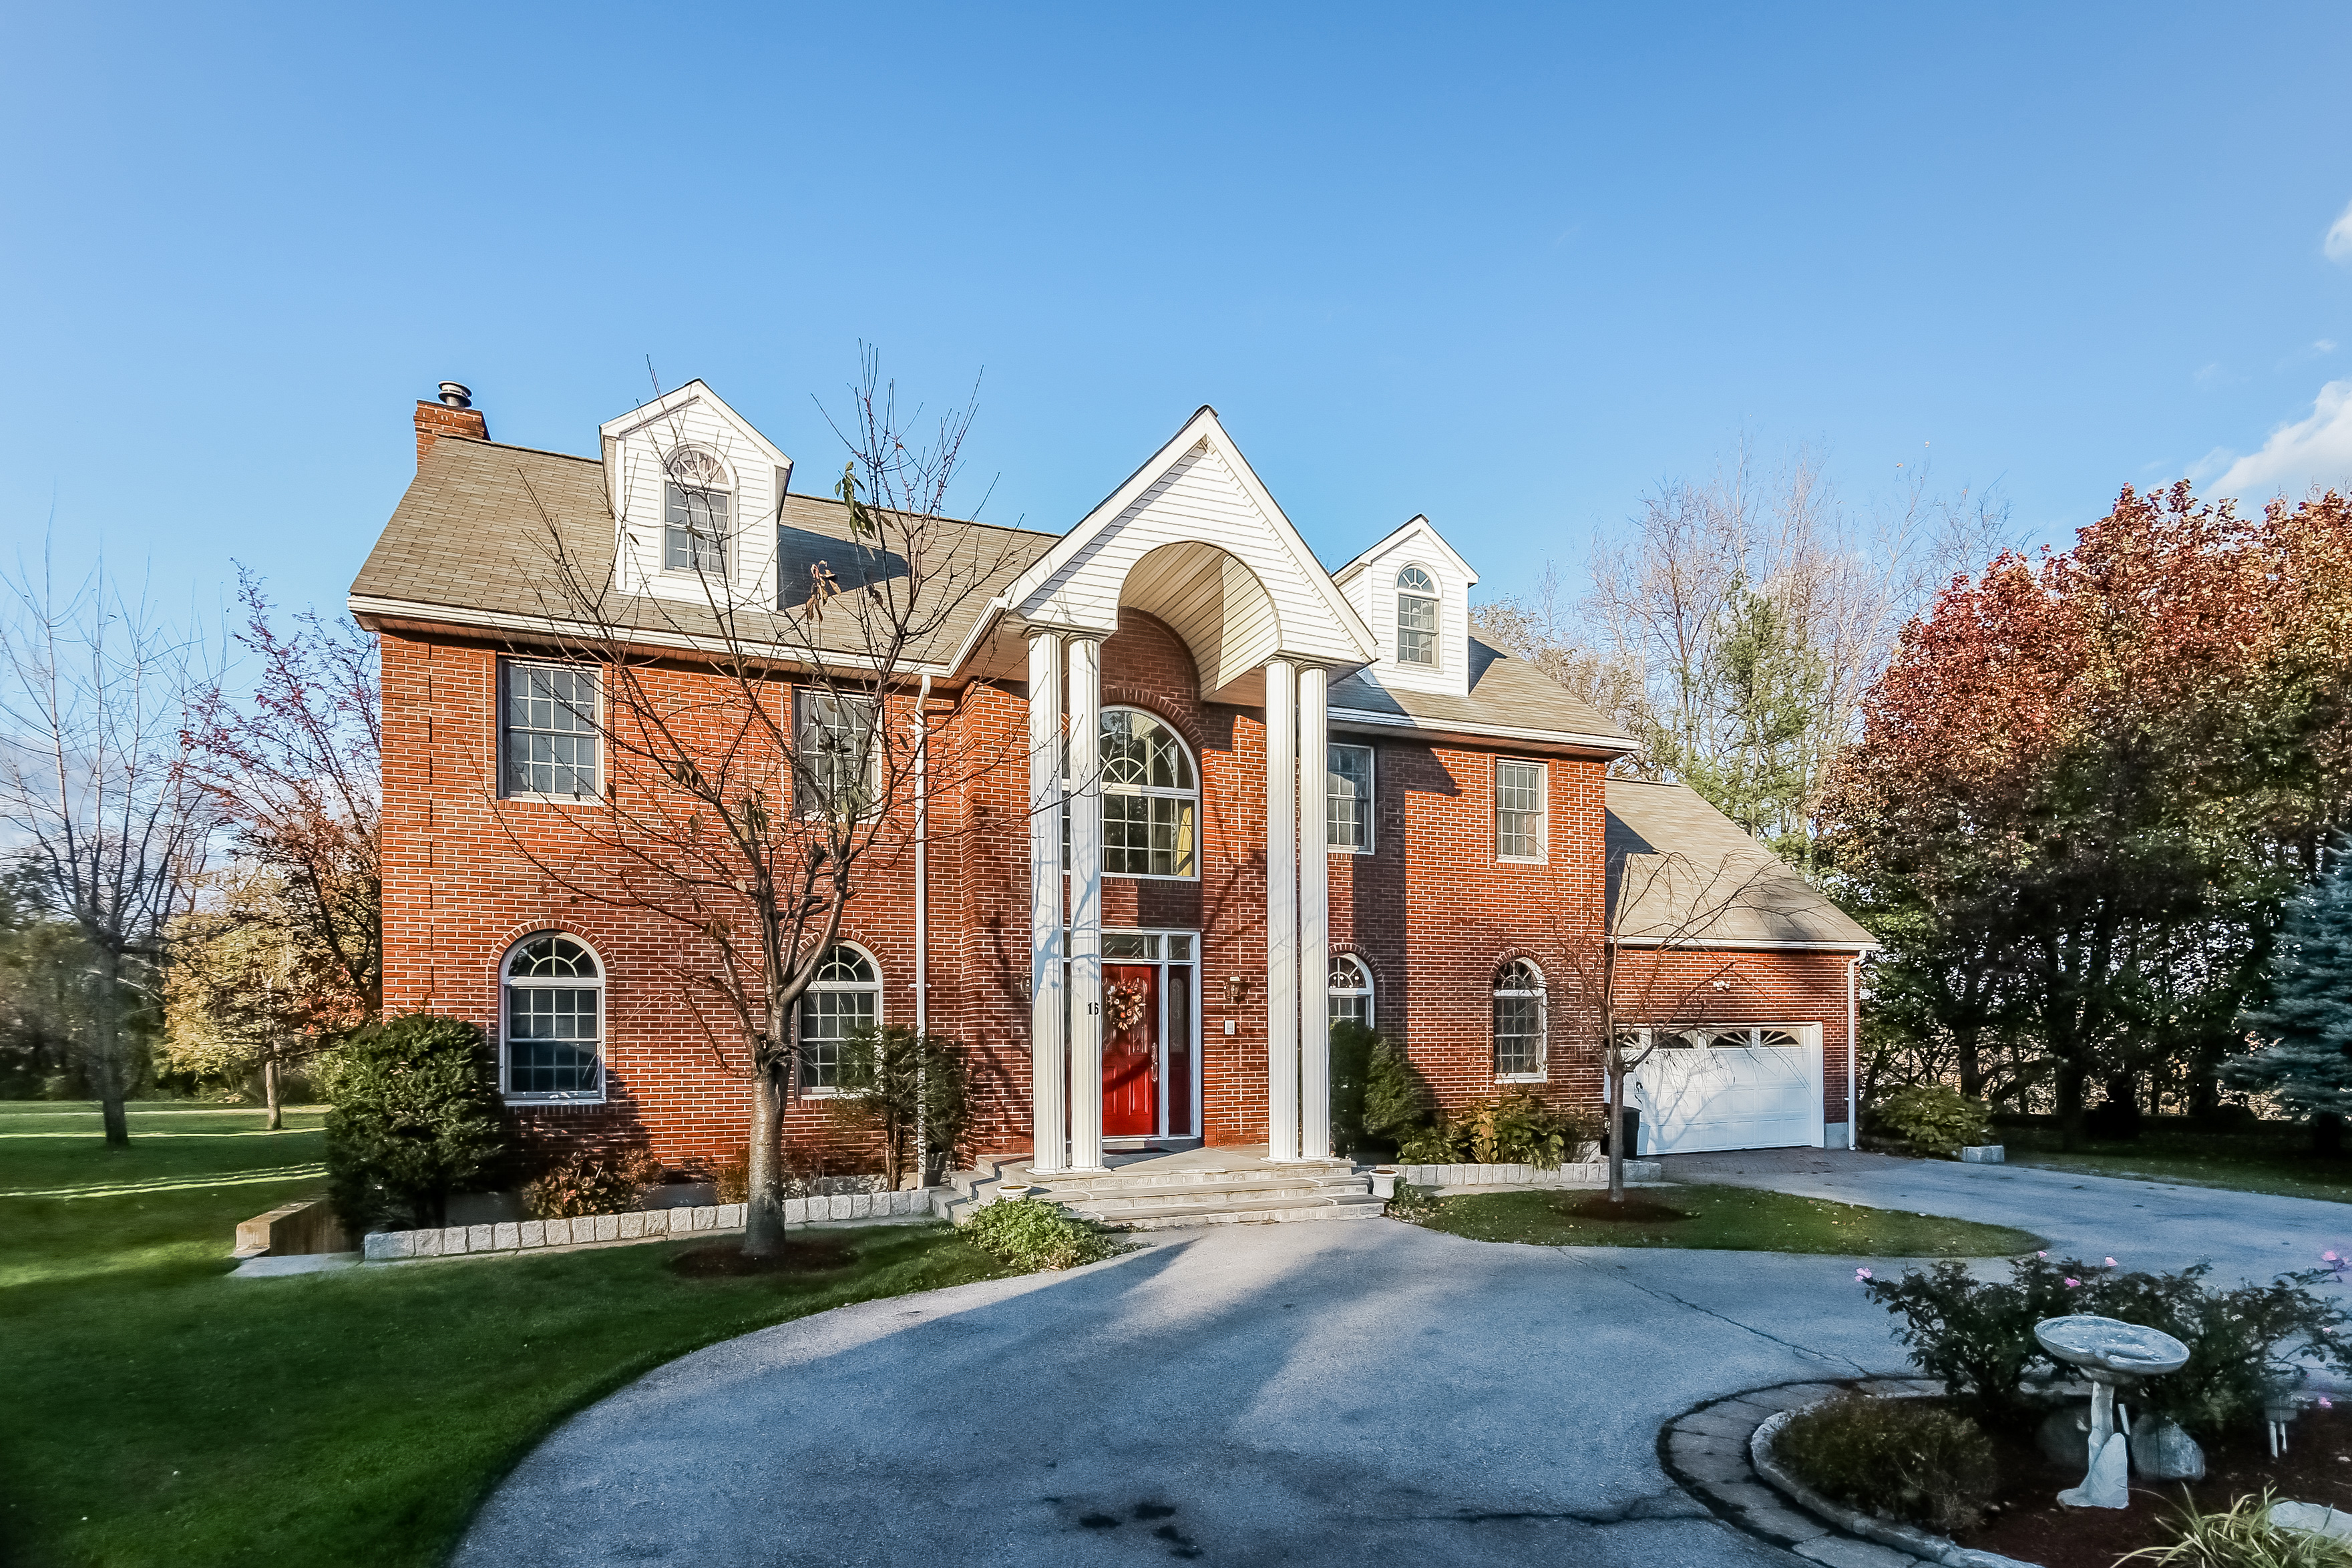 Property For Sale at Bryn Mawr Knolls Center Hall Colonial